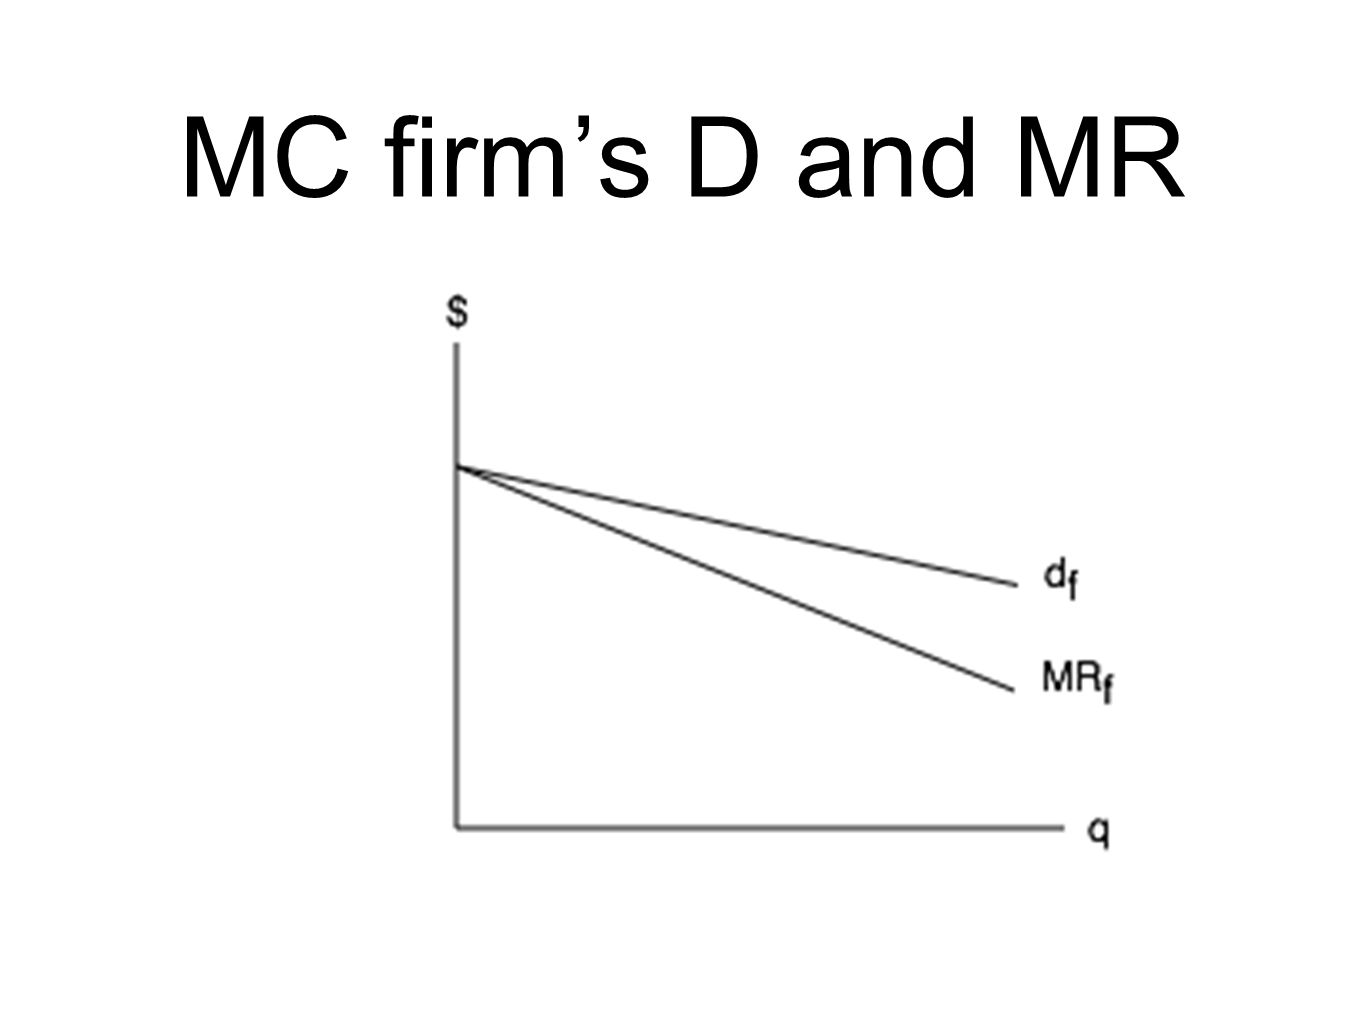 MC firm's D and MR